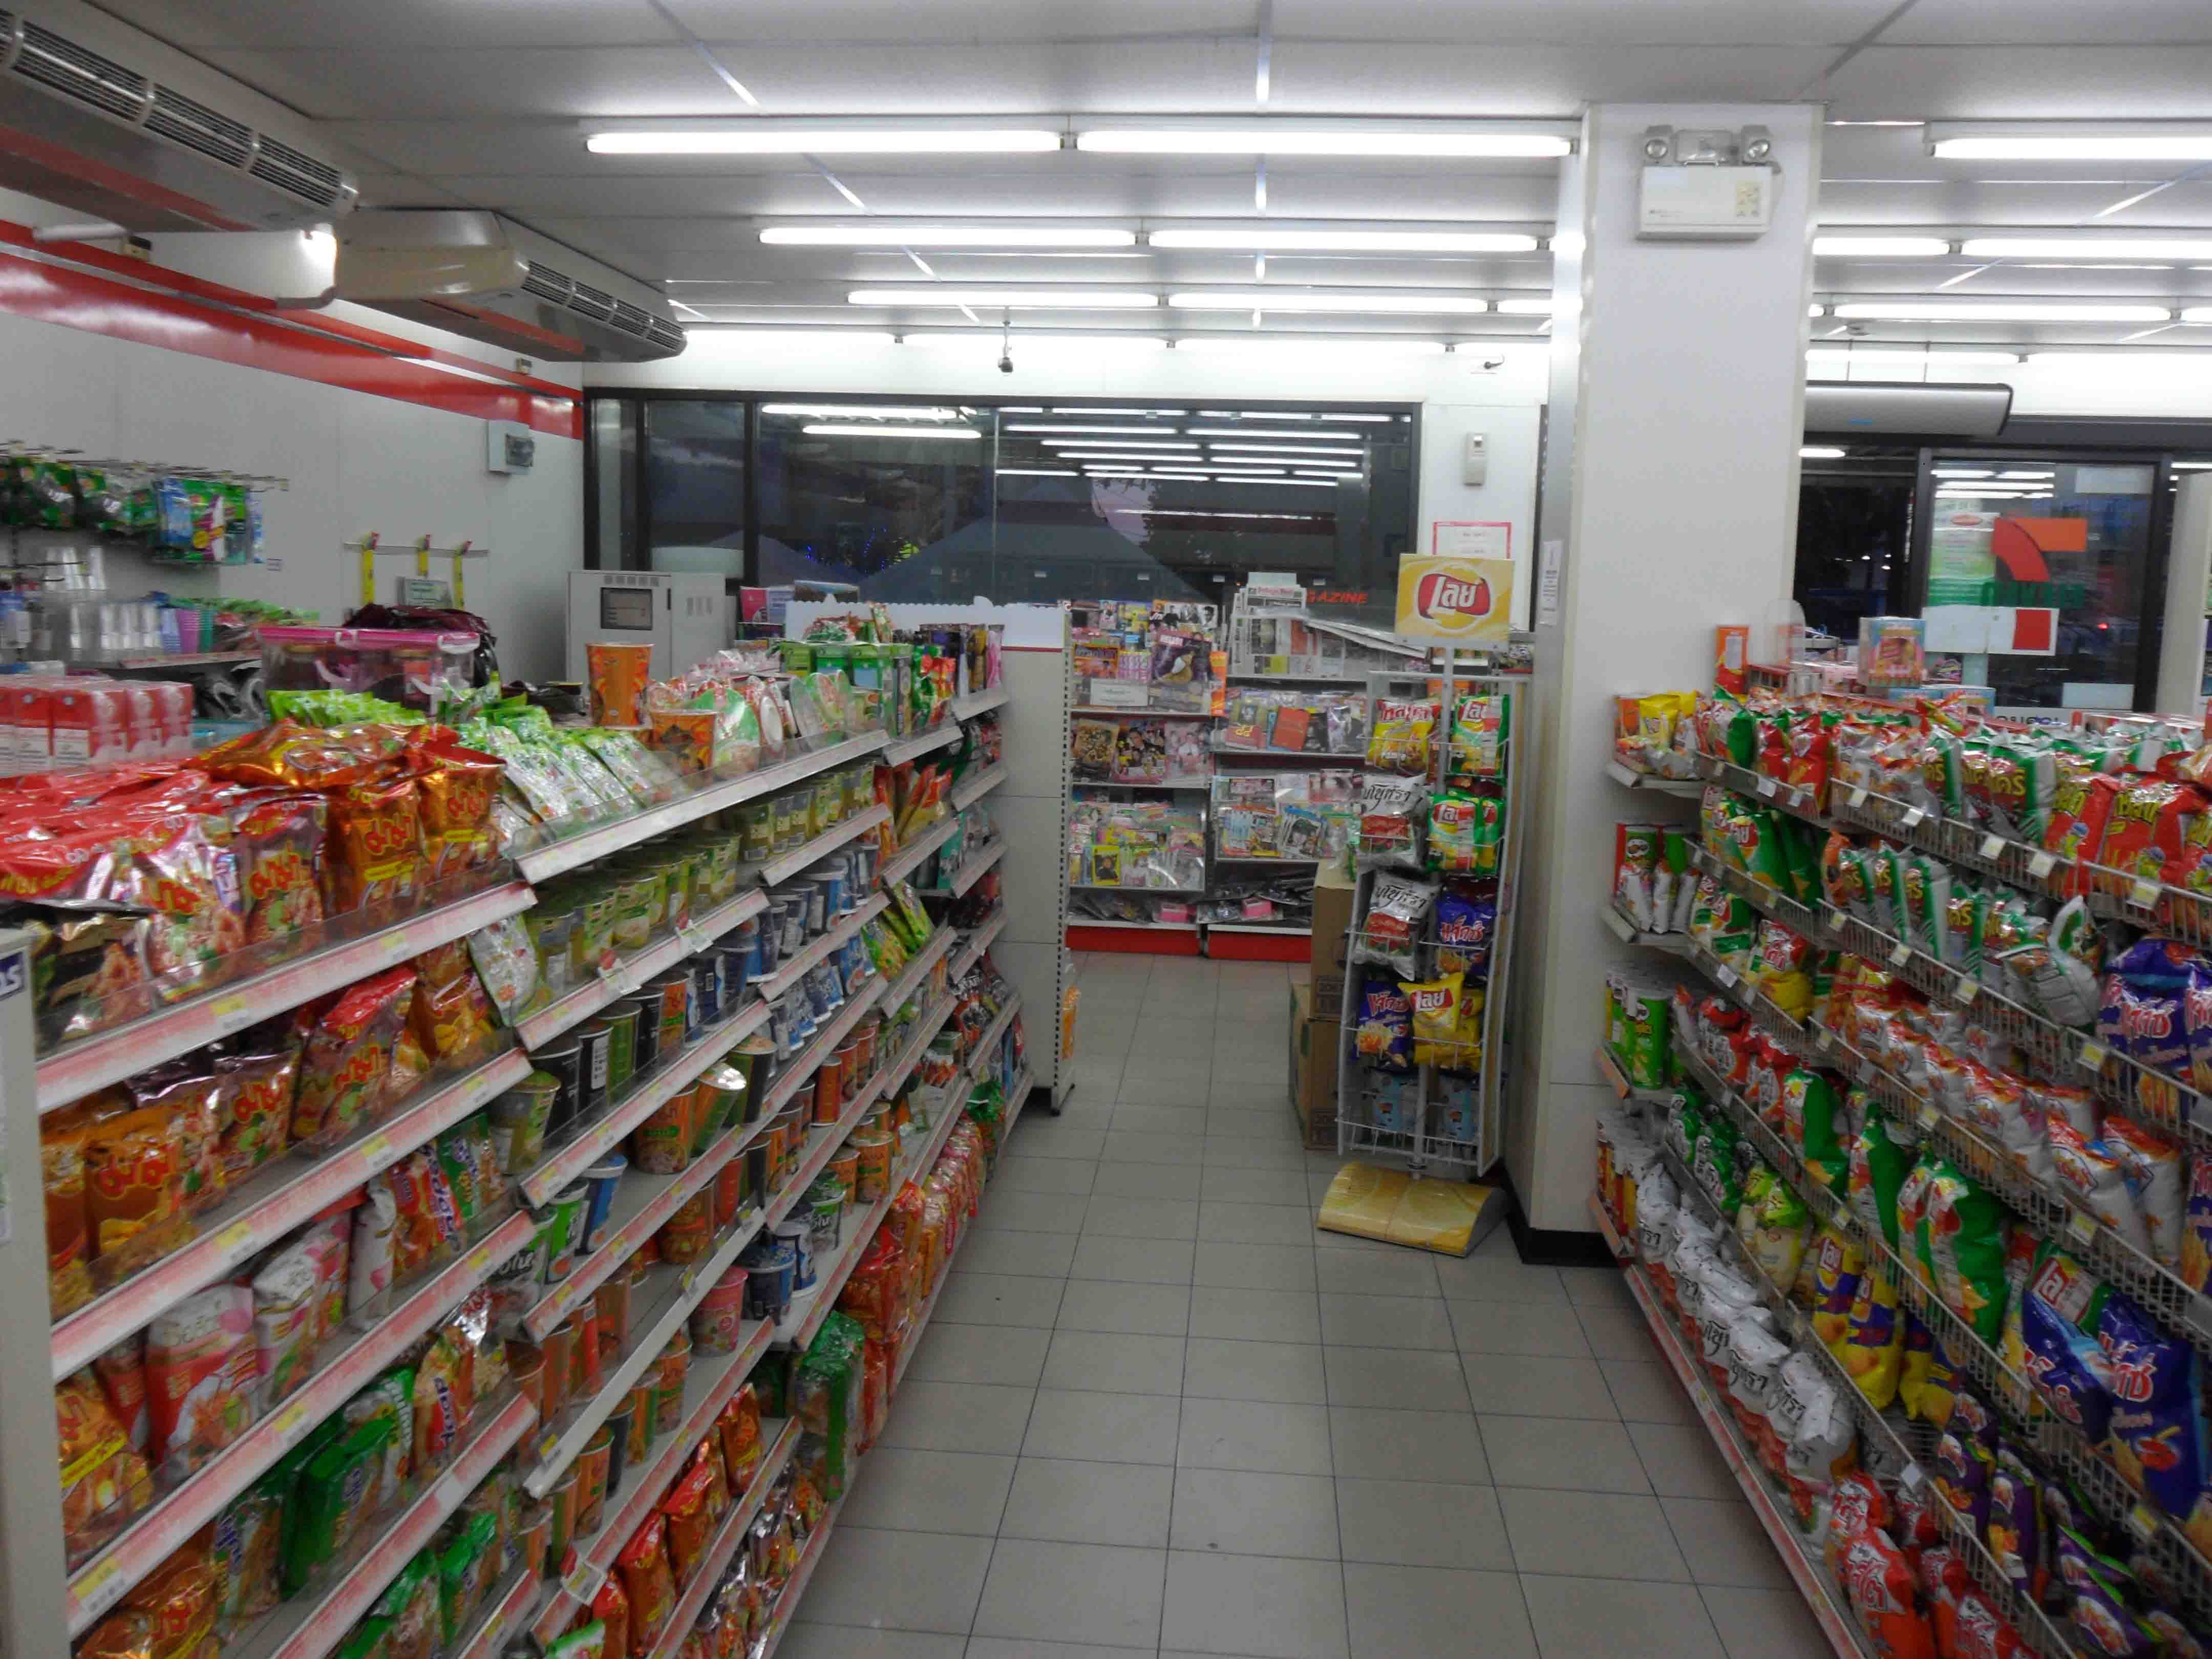 7eleven Floor Layout Supermarket Grocery Store Convenience Store Isles Interior Design Grocery Supermarket Store Layout Floor Layout